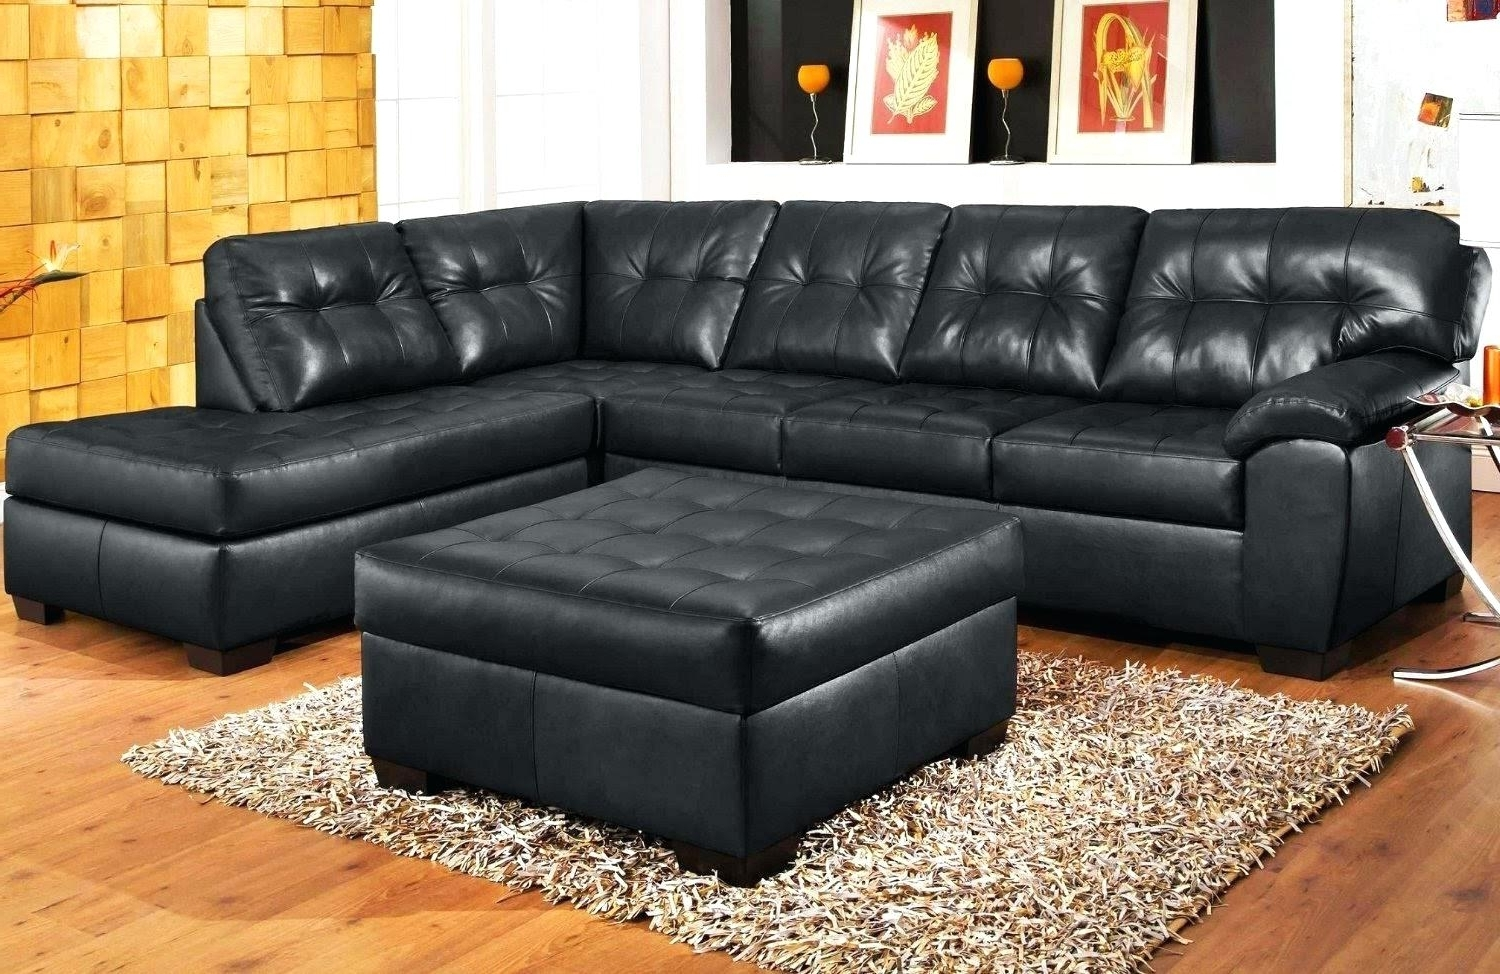 Best And Newest Black Sectional Sofas For Black Sectional Couch Sofa With Chaise For Cheap Leather Recliner (View 6 of 20)